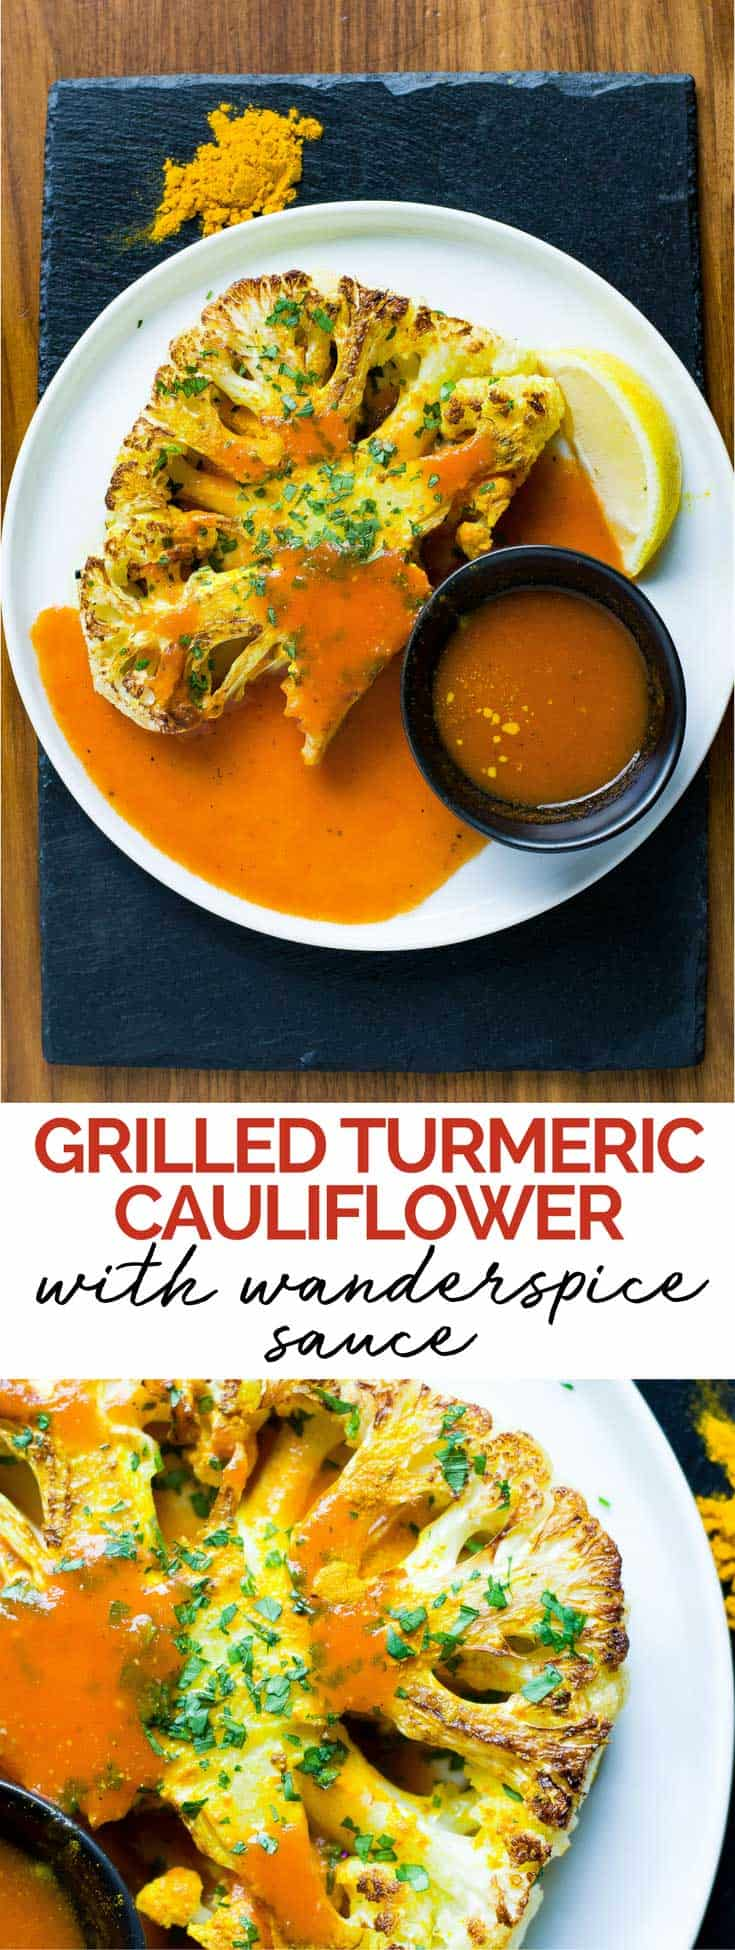 Grilled cauliflower steak recipe with turmeric dust and our original red sauce. Healthy and filling. Cauliflower | Steak | Turmeric | Vegan | Gluten-Free | Paleo